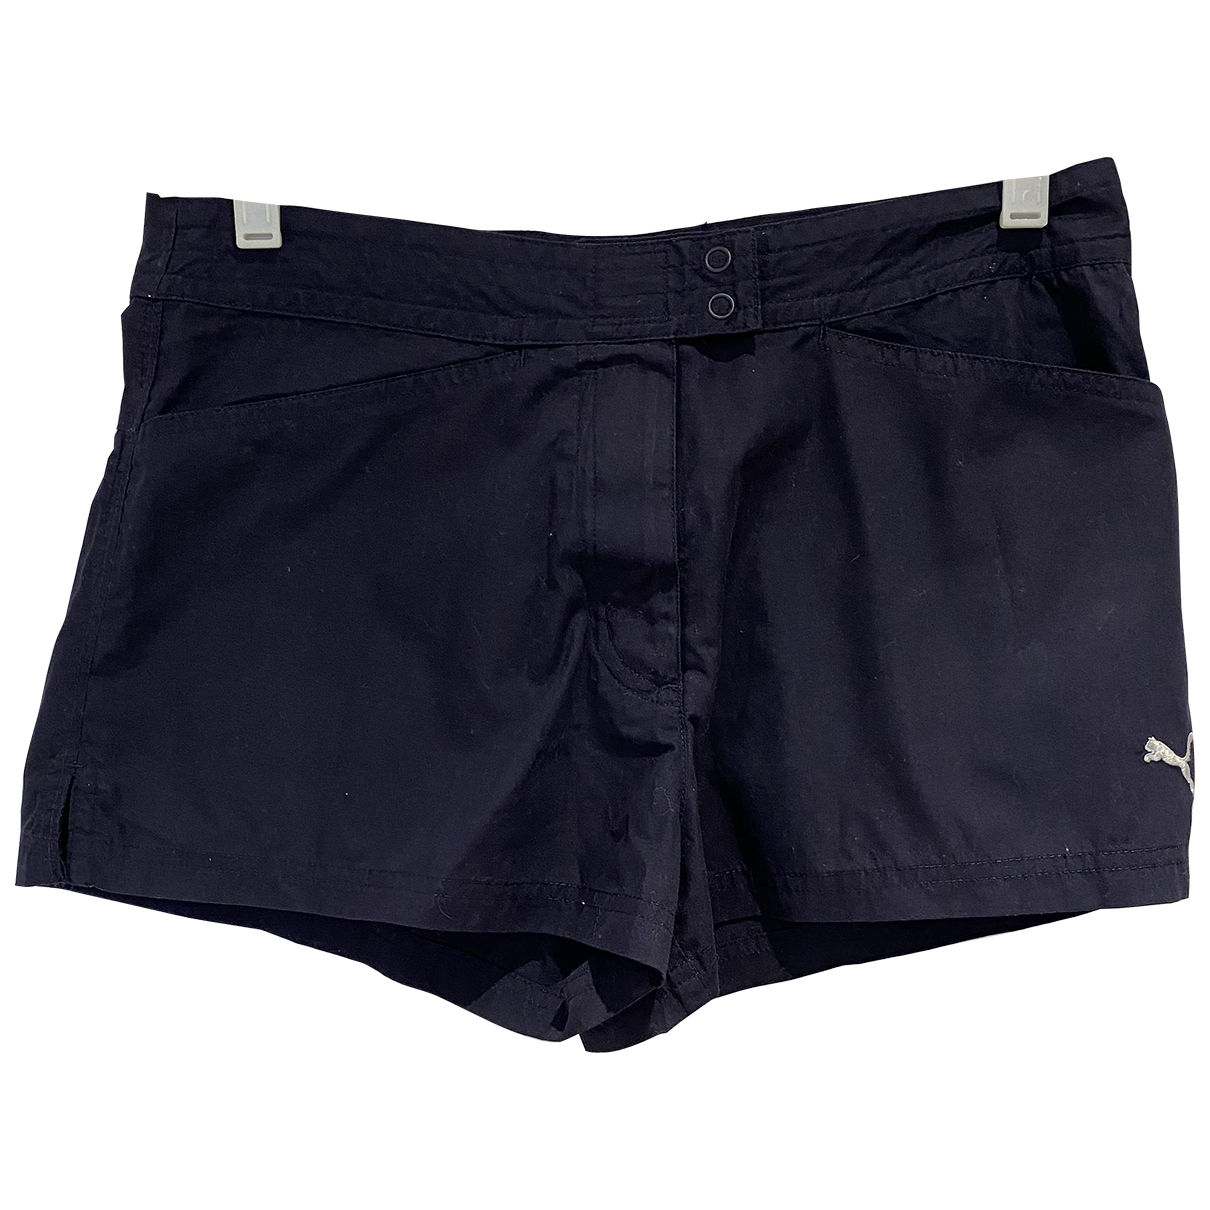 Puma \N Navy Shorts for Women S International